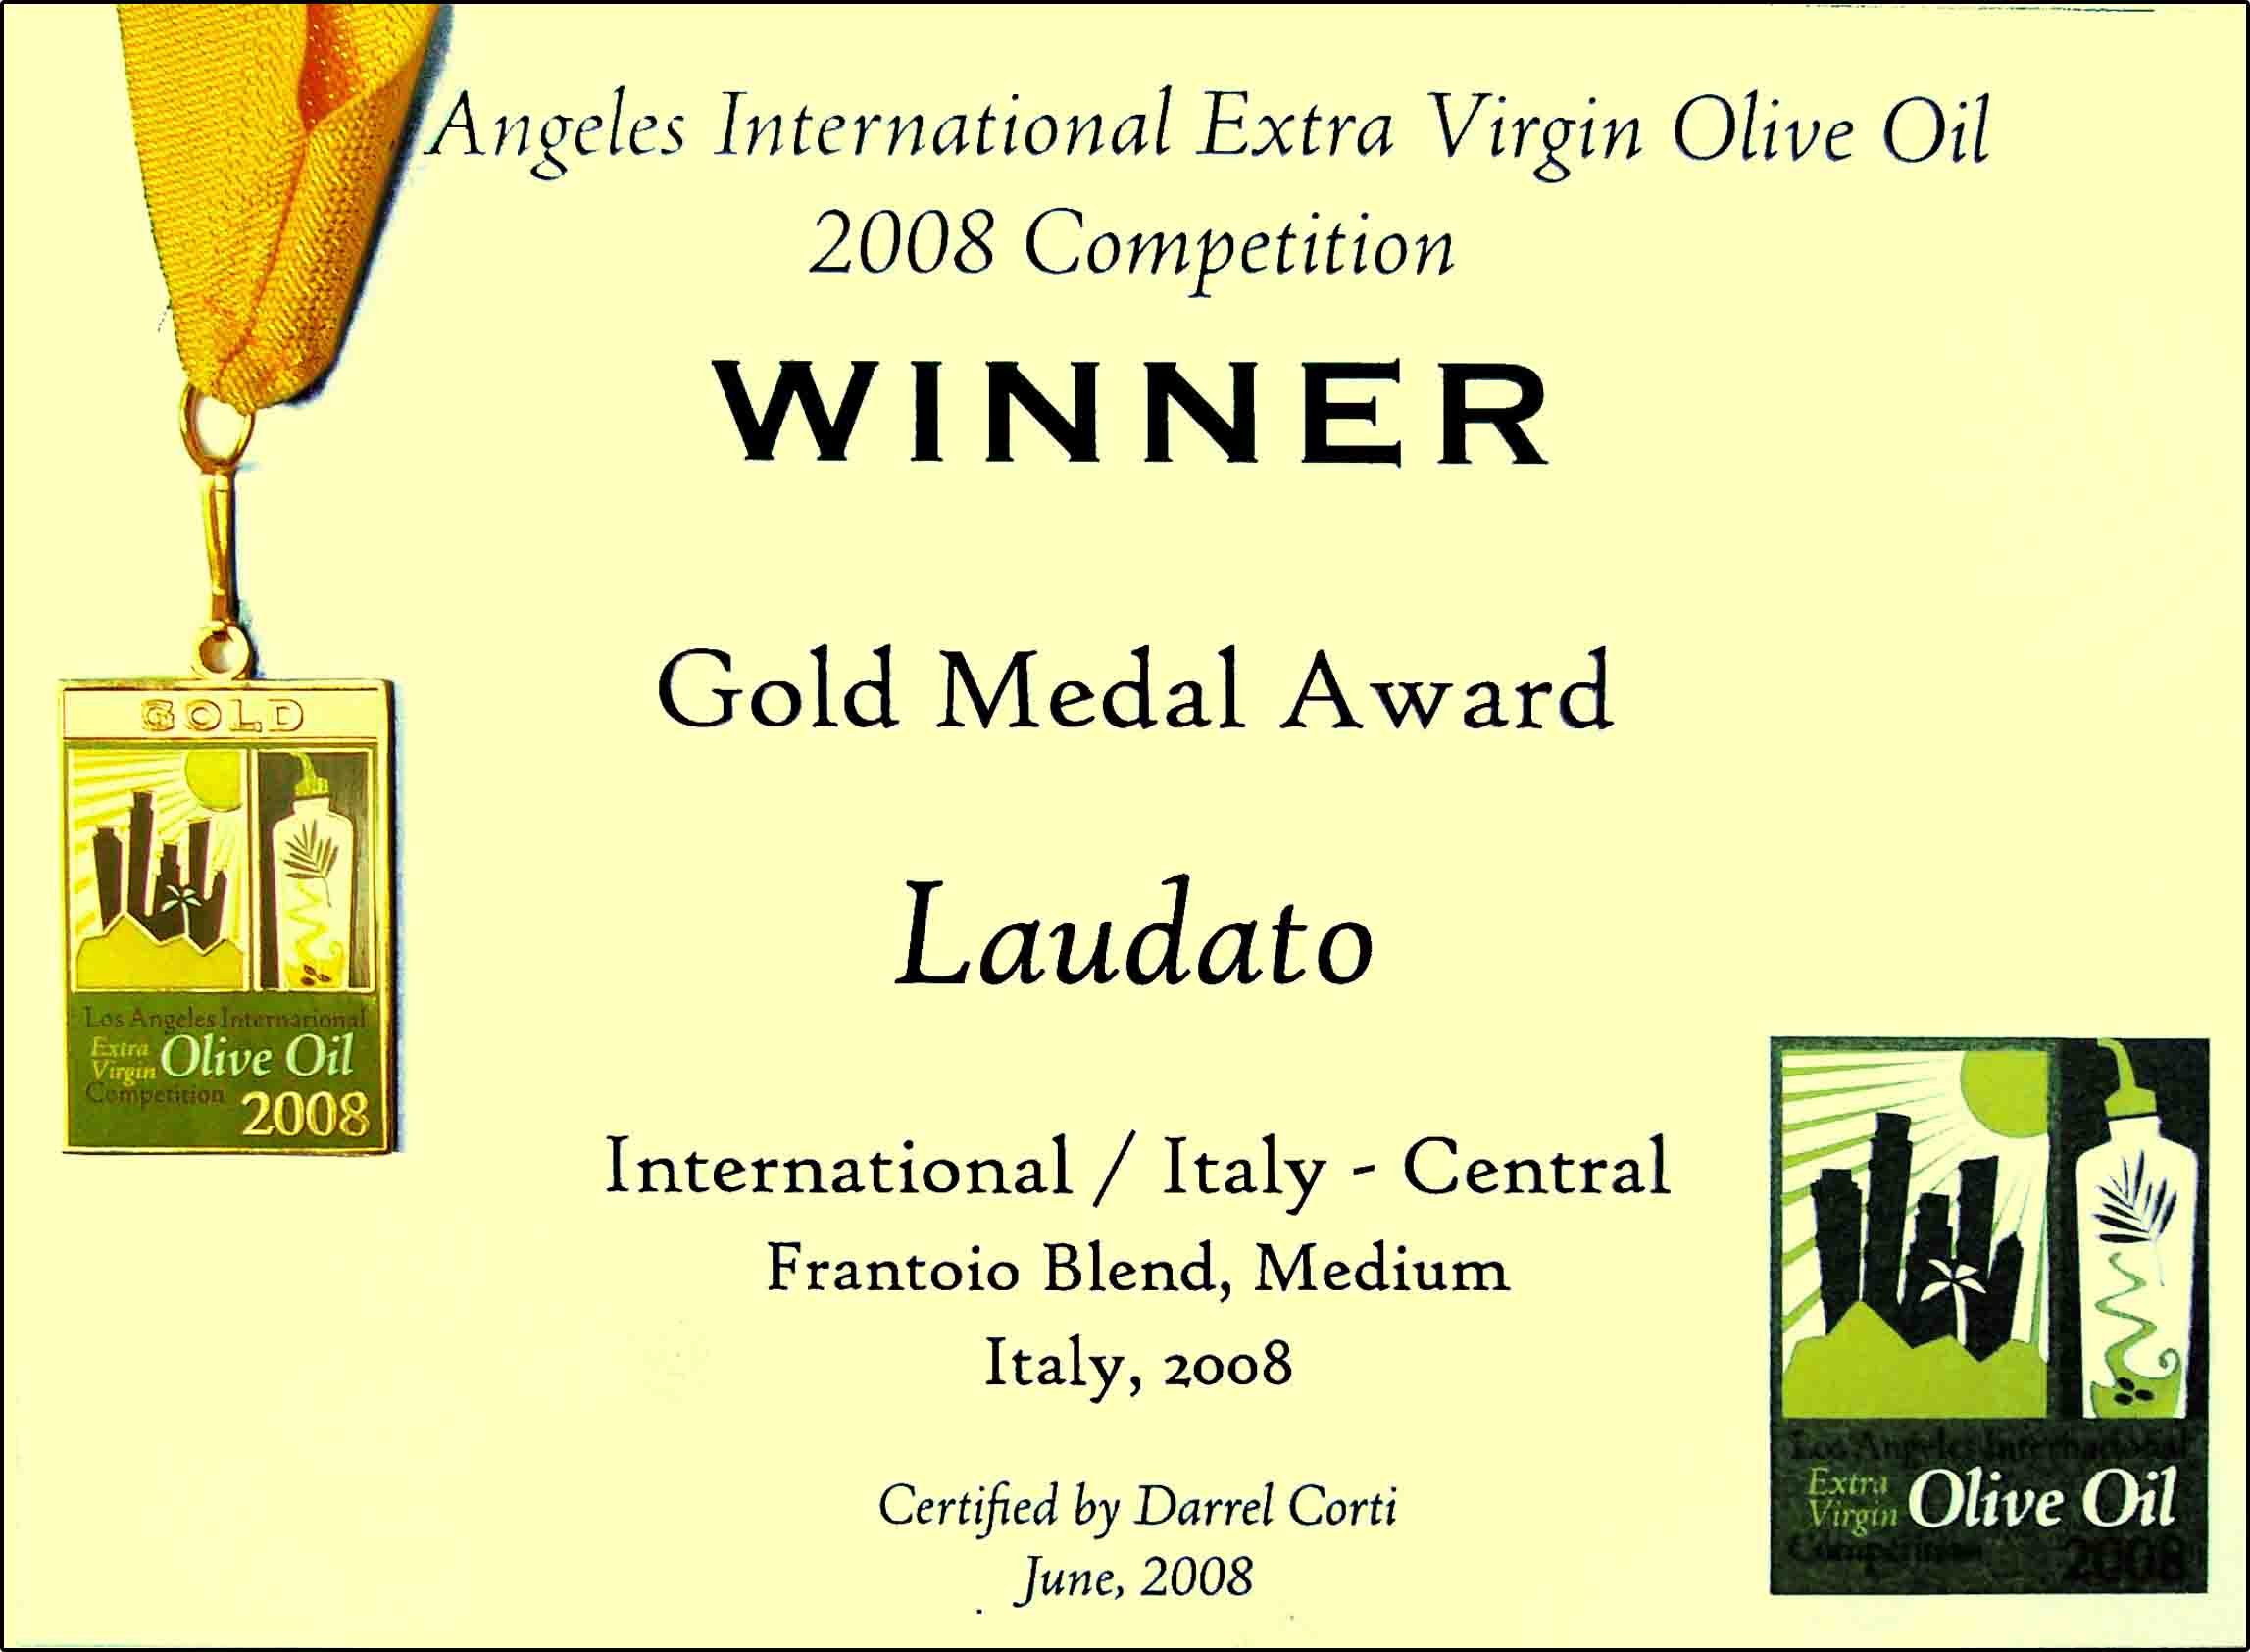 Los Angeles International Extra Virgin Olive Oil Competition 2008